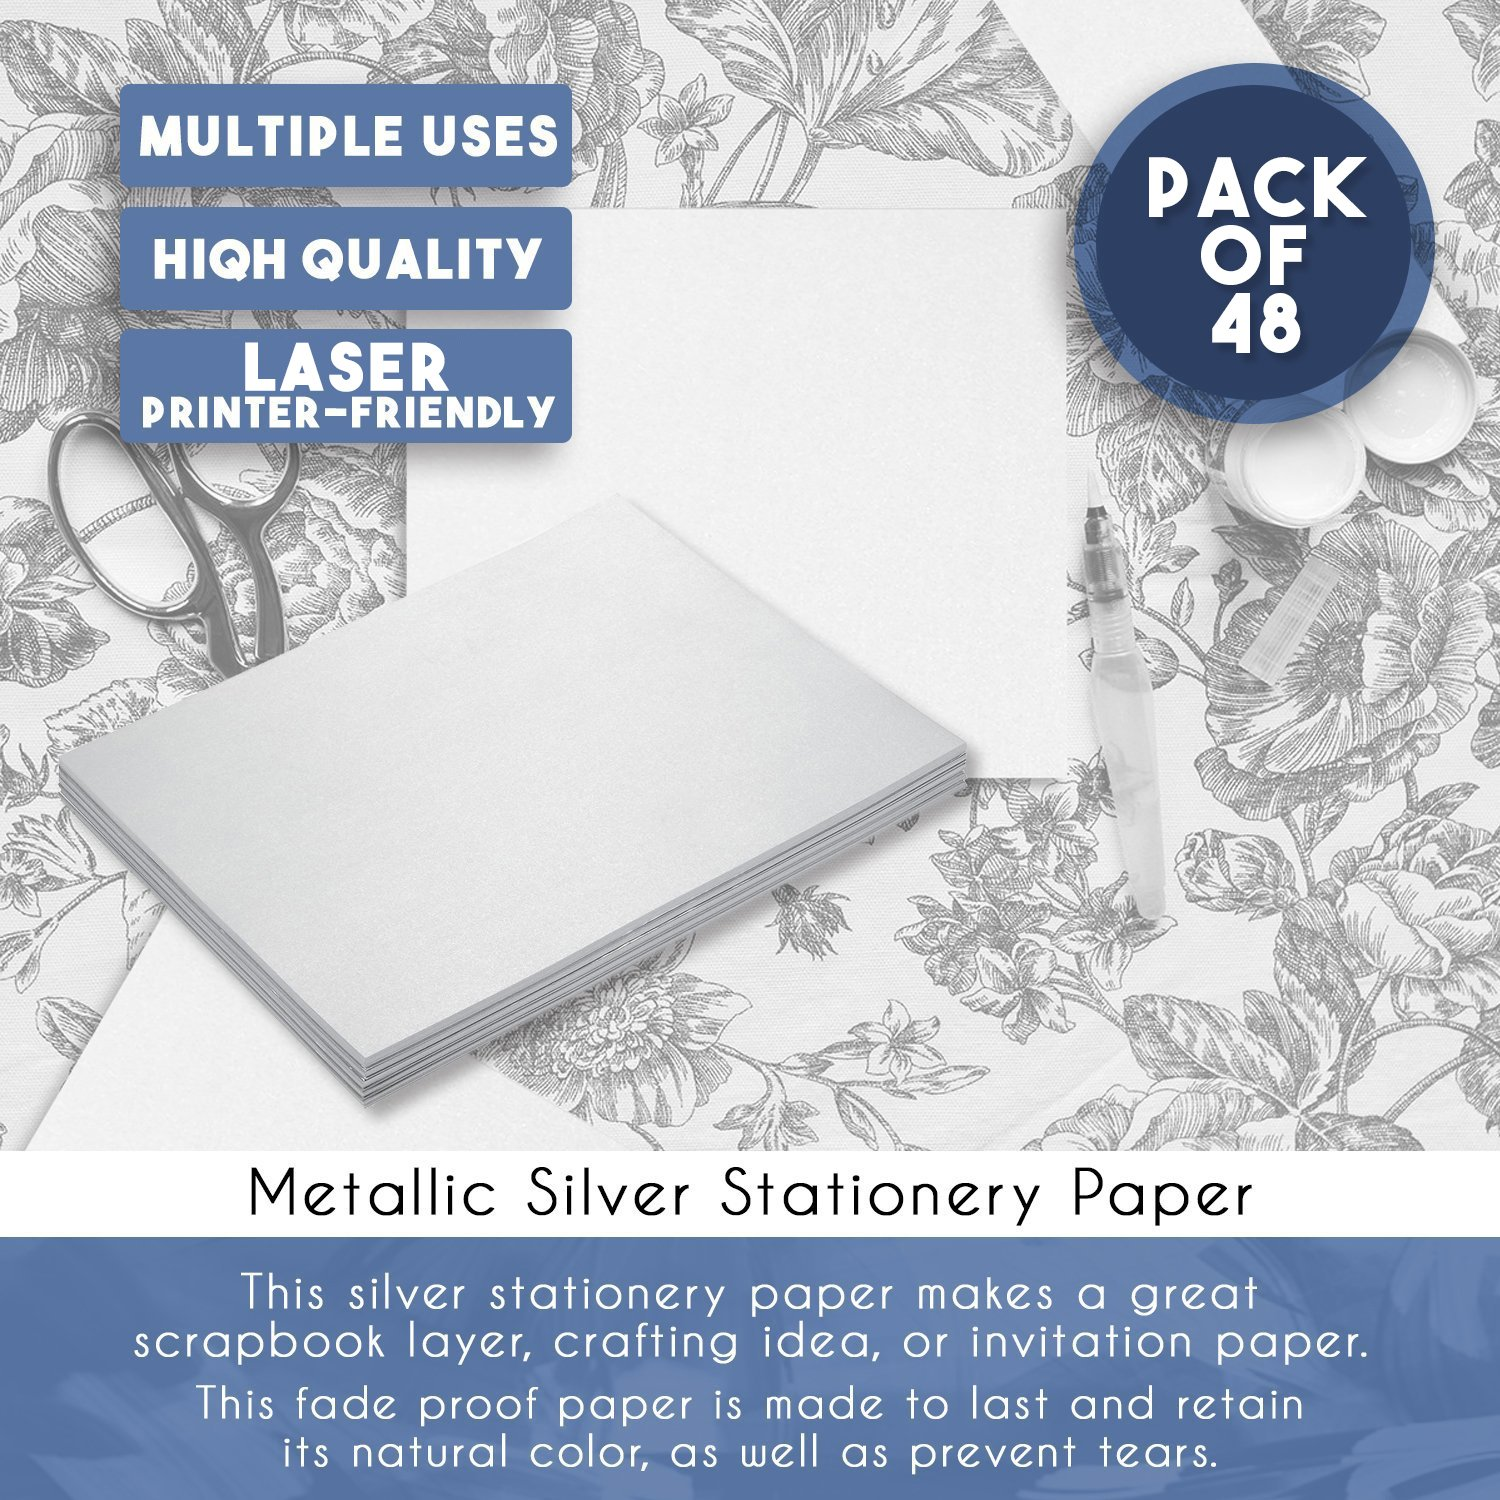 Scrapbooking Letter Writing Paper Cute Paper Premium Paper Stock 8.5 x 11 Inches Writing Stationery 48 Count Metallic Modern Design Silver Stationery Paper